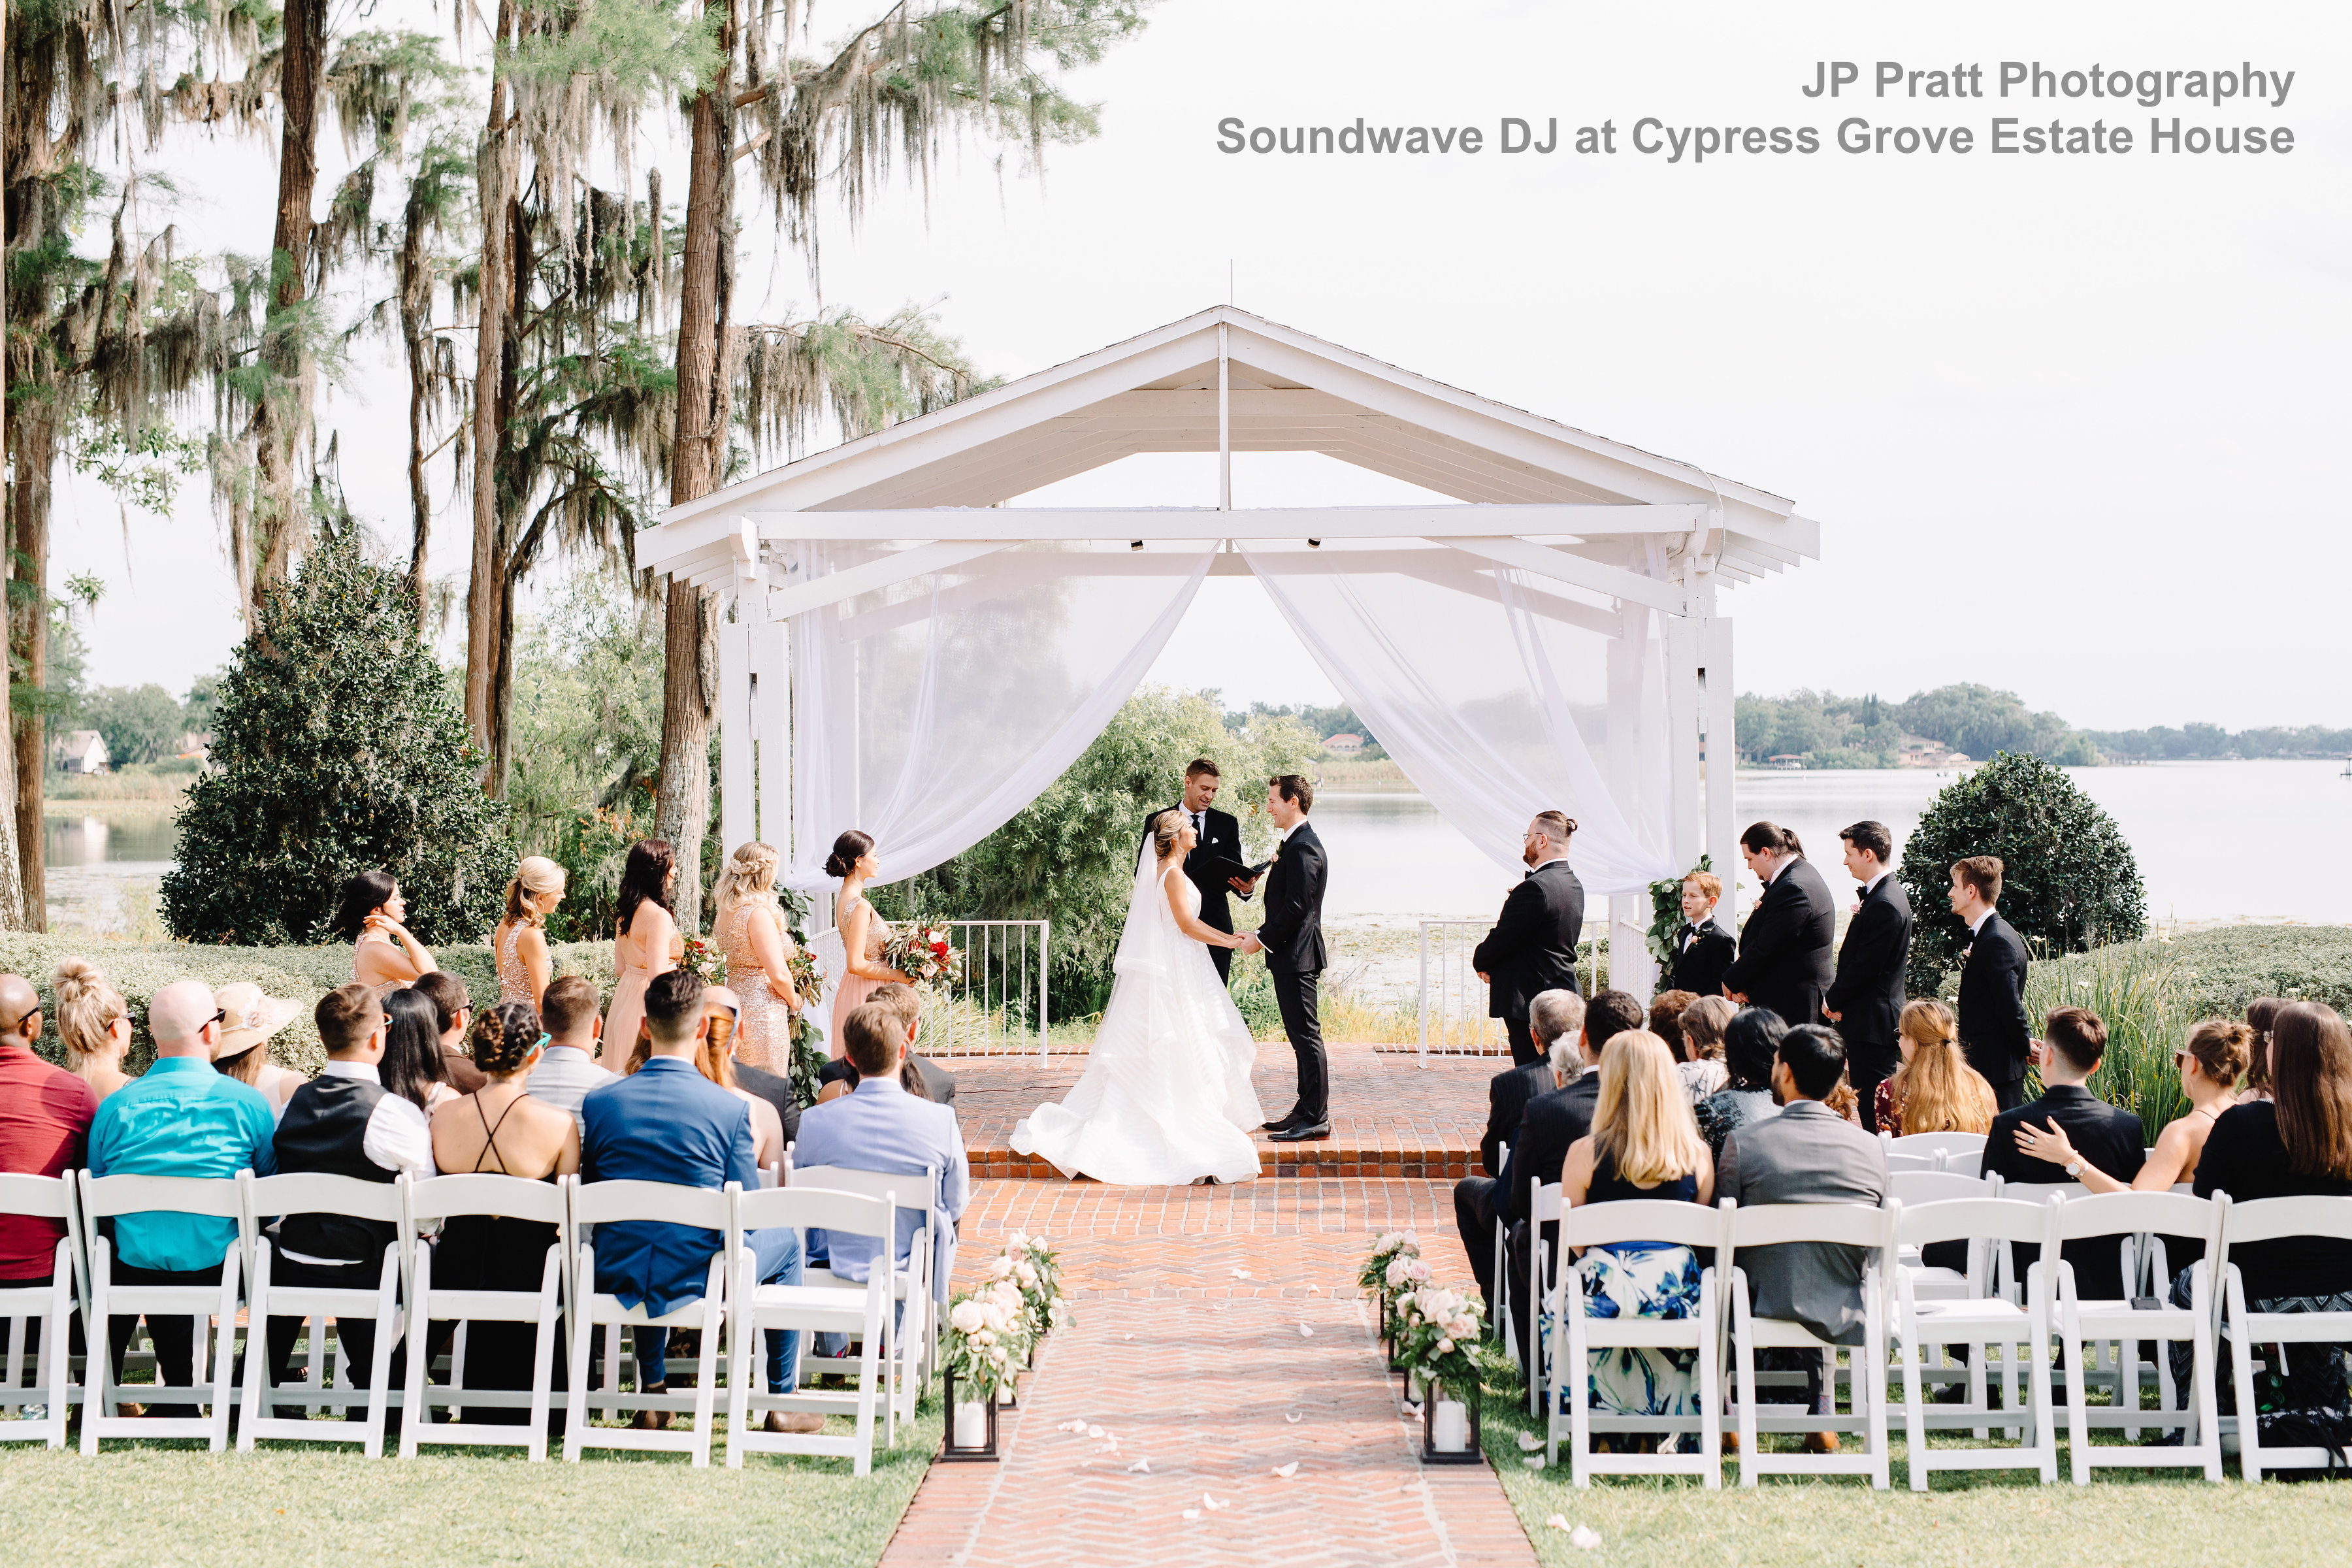 cypress grove estate house - orlando, fl - orlando wedding venue - soundwave entertainment dj